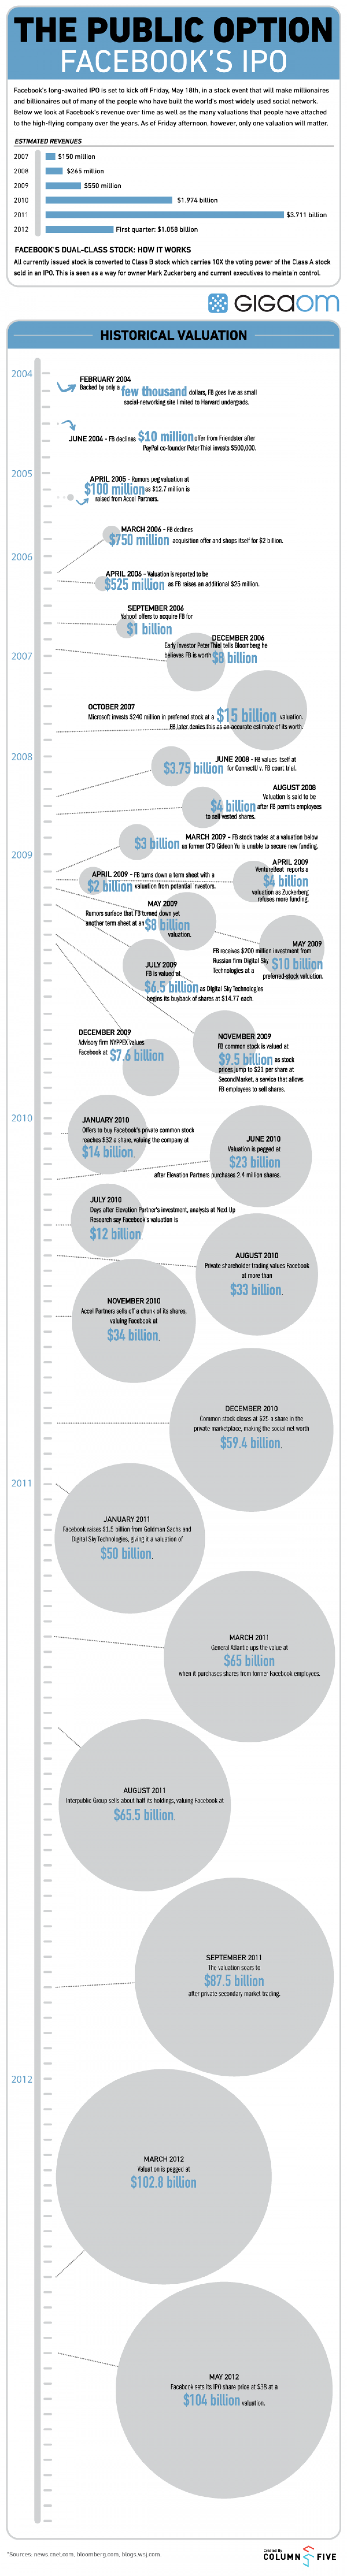 A Look Back at Facebook's Revenue and Valuations Infographic